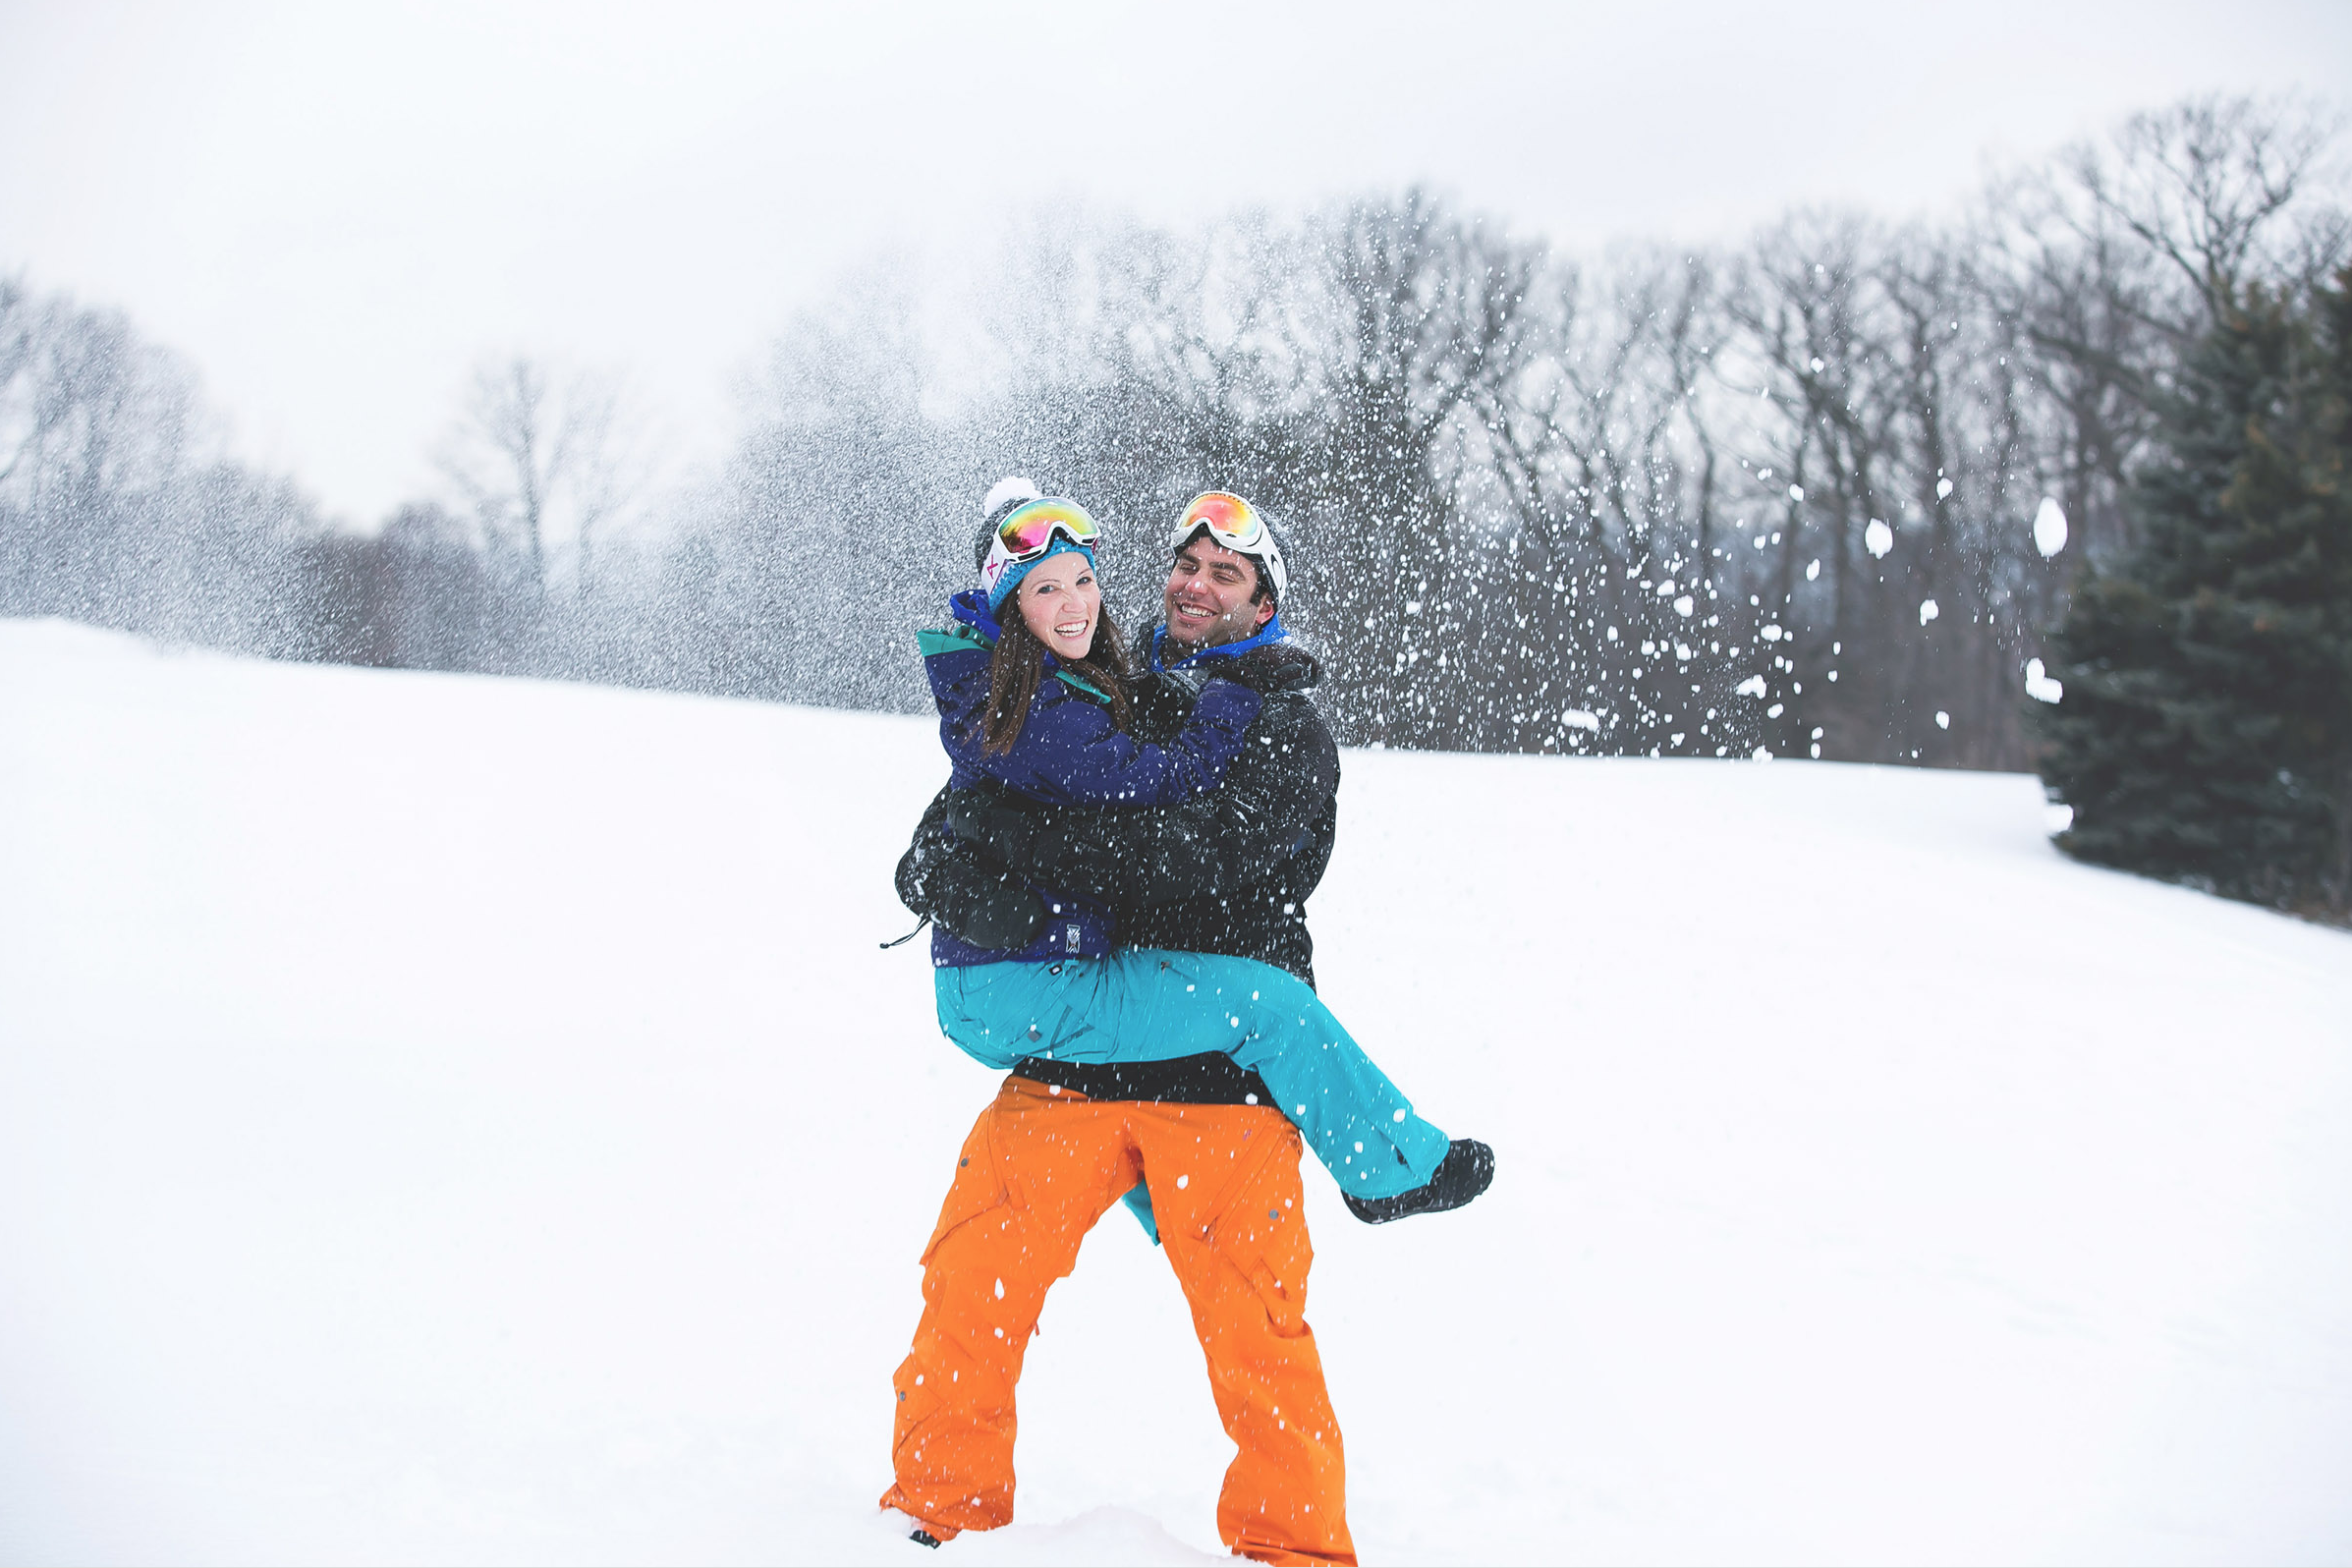 Engagement-Photos-Hamilton-Niagara-Toronto-Burlington-Oakville-Photographer-Engaged-Ring-Photography-Snowboarding-Winter-Moments-by-Lauren-Image-15.png